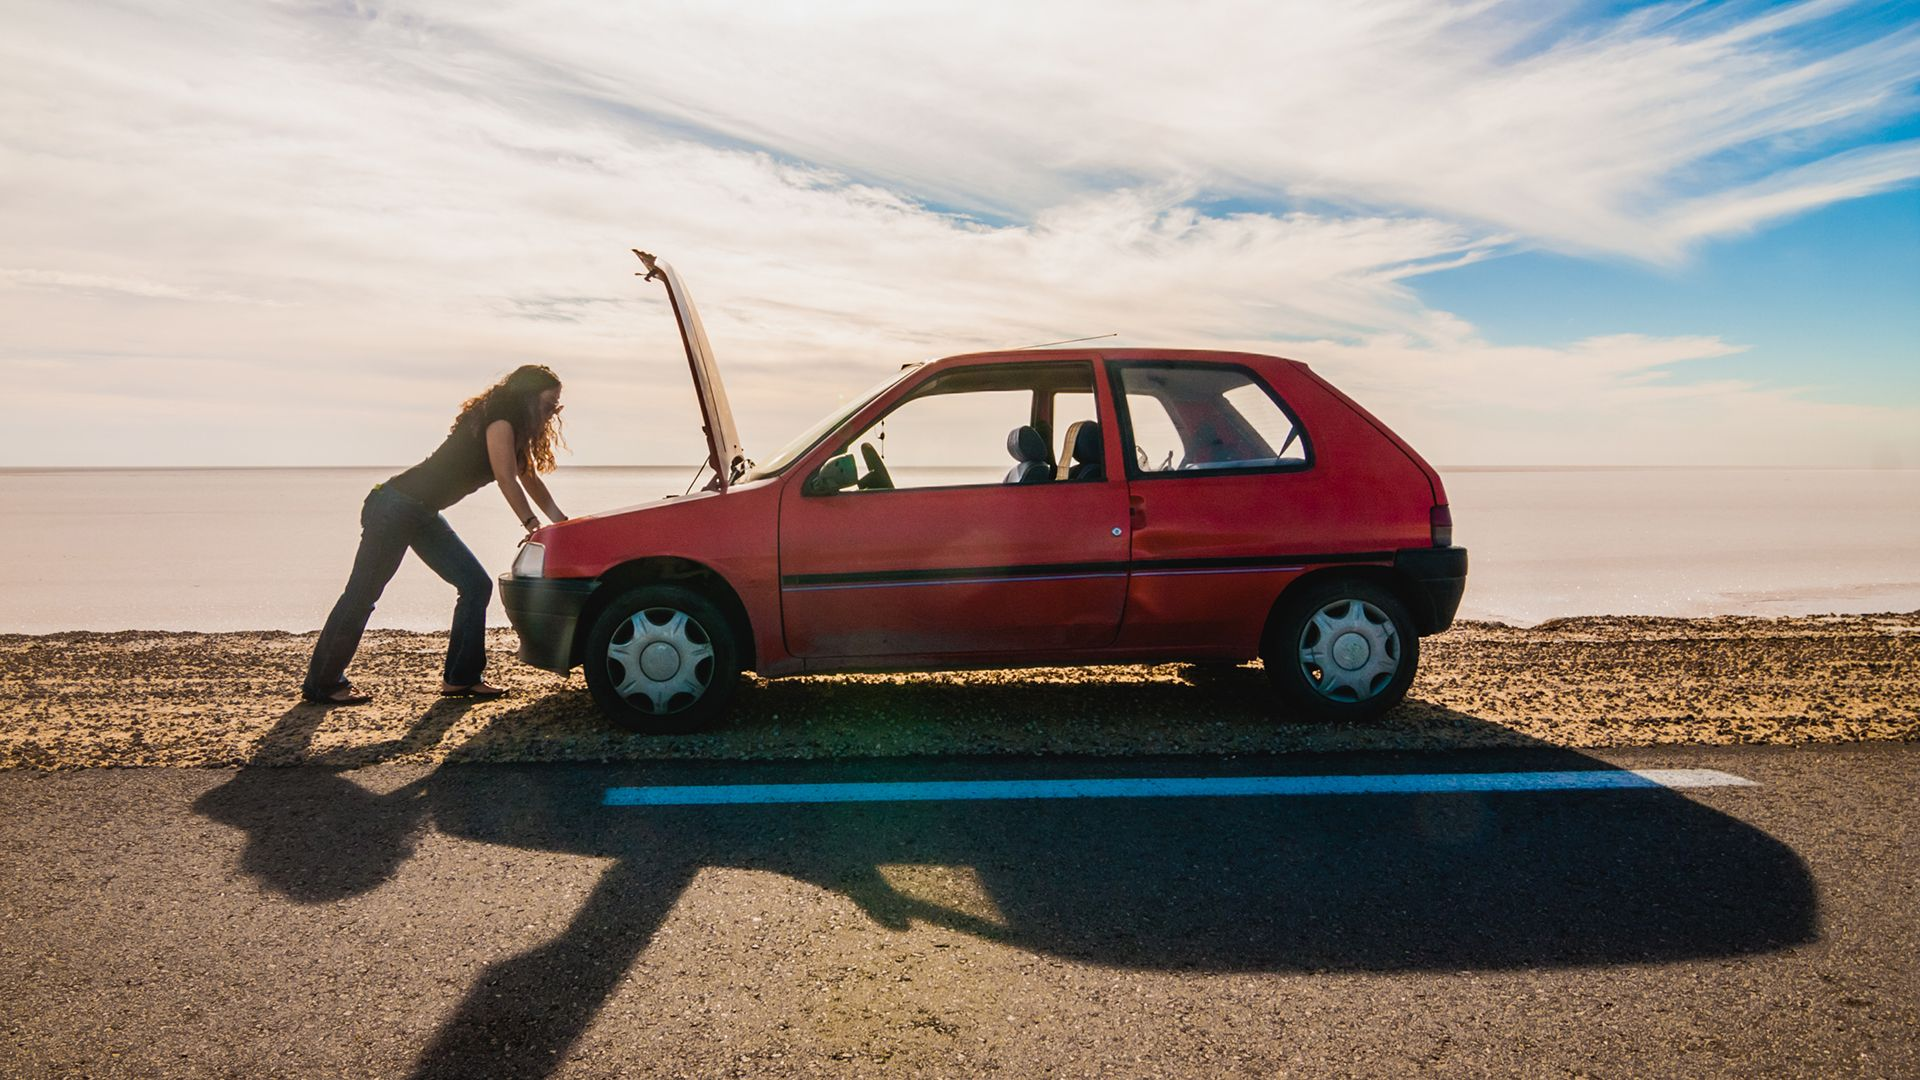 Woman stranded due to car trouble on a desert road.